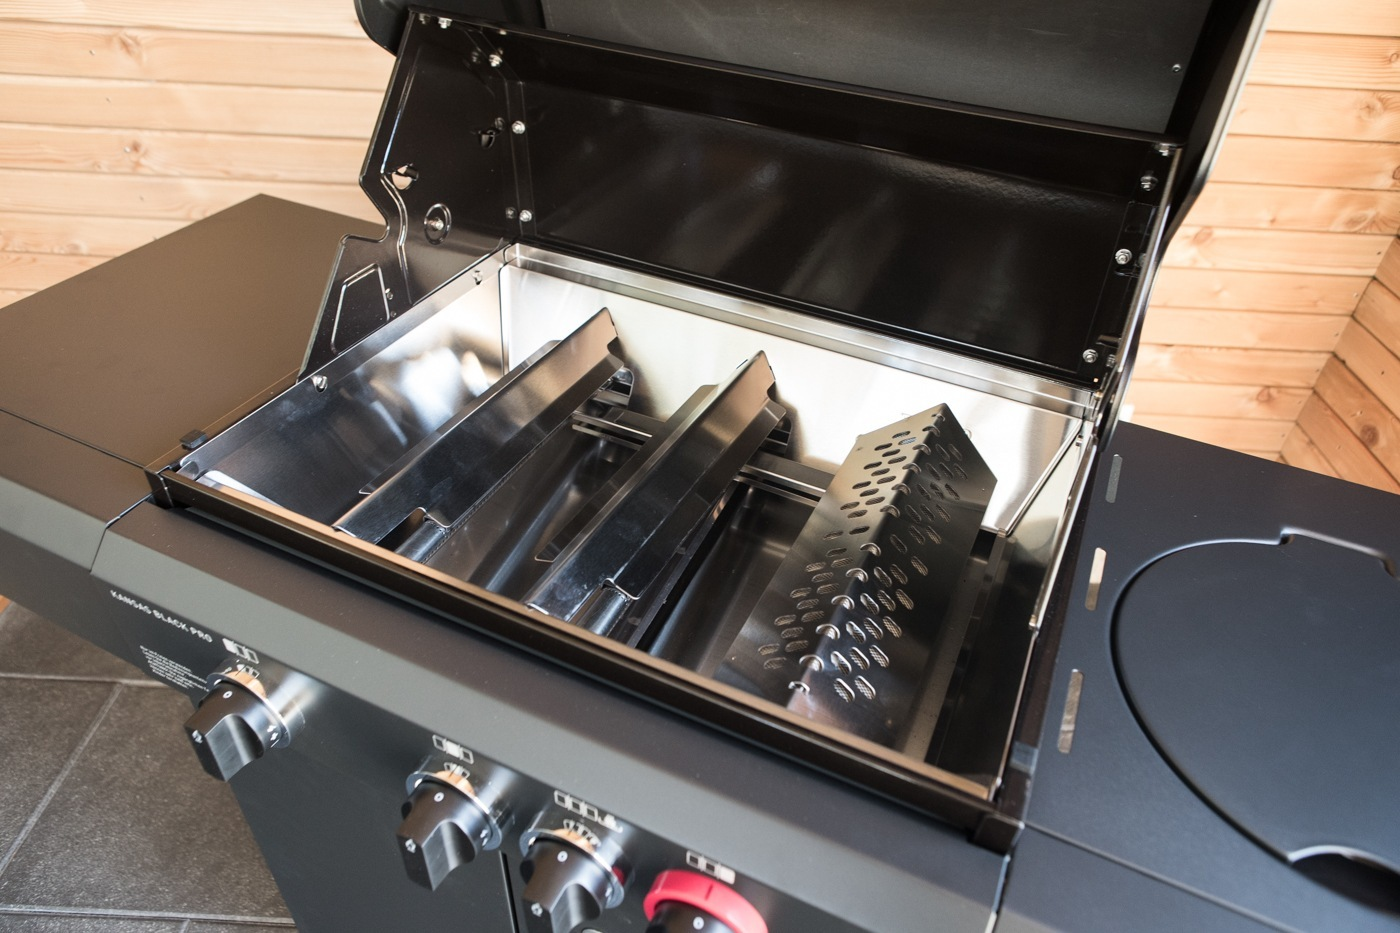 Enders Gasgrill Simple Clean : Enders grill robuste gas und holzkohlegrills und campinggrills